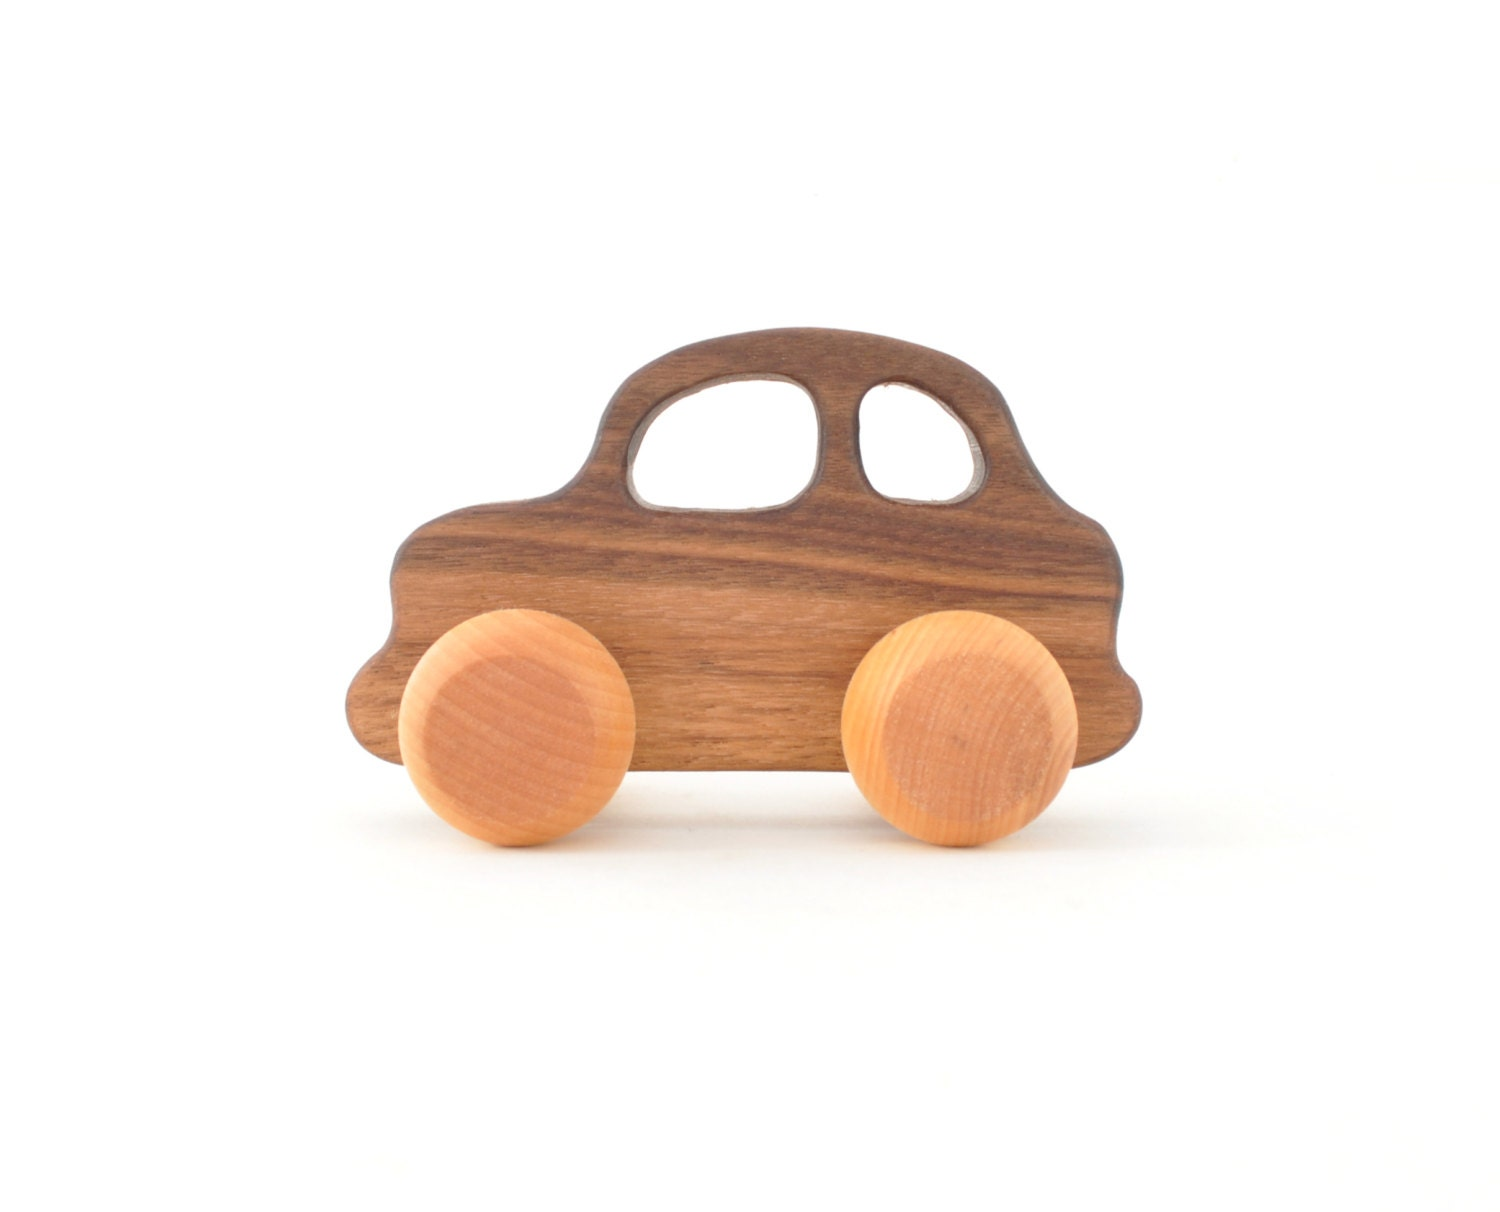 Wooden Toy Car Wooden Toy for Babies Toddlers and by KeepsakeToys